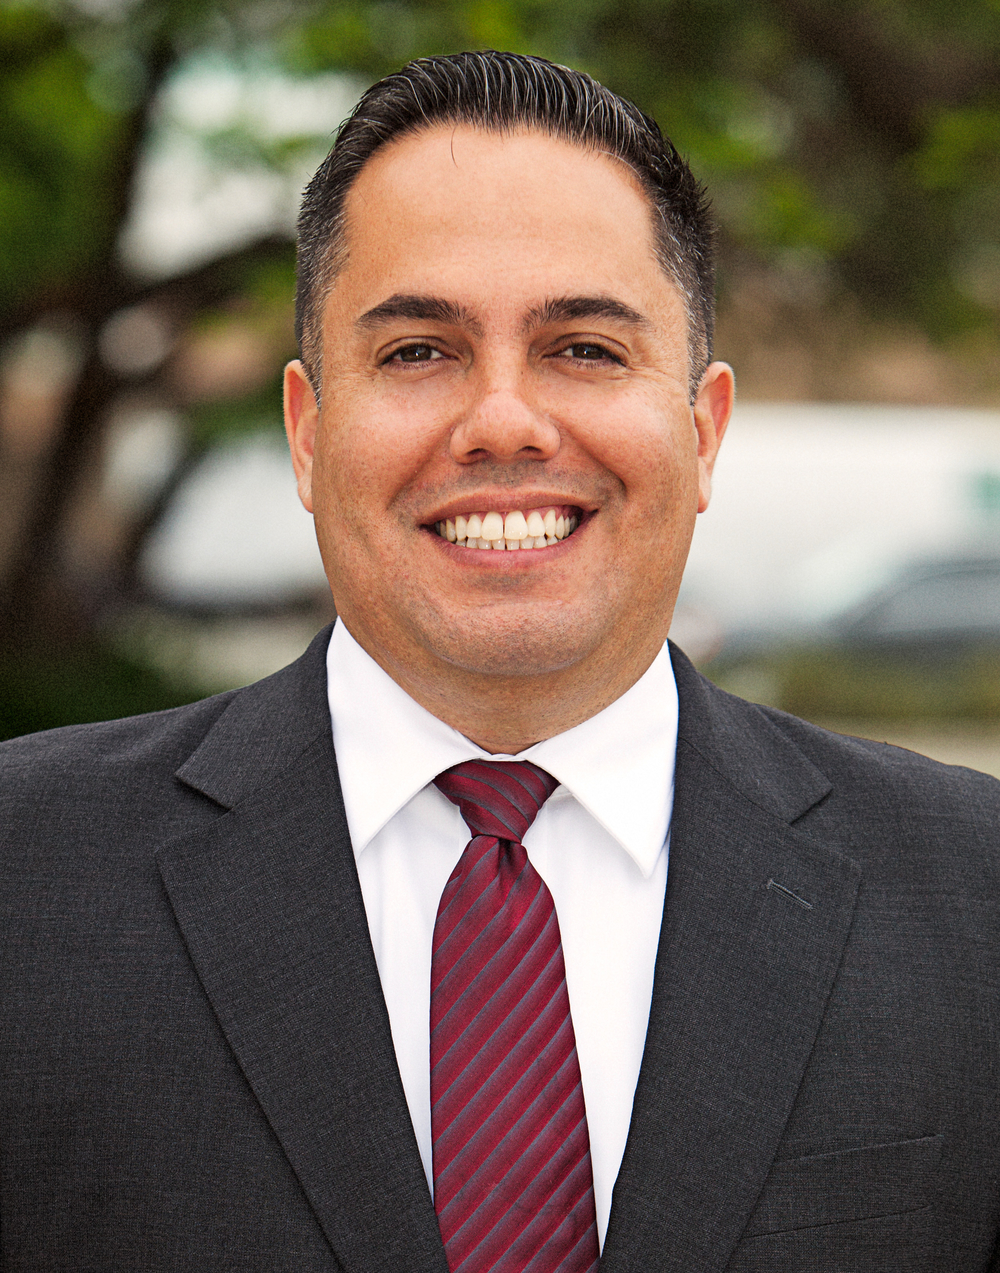 Mayor Alex Vargas